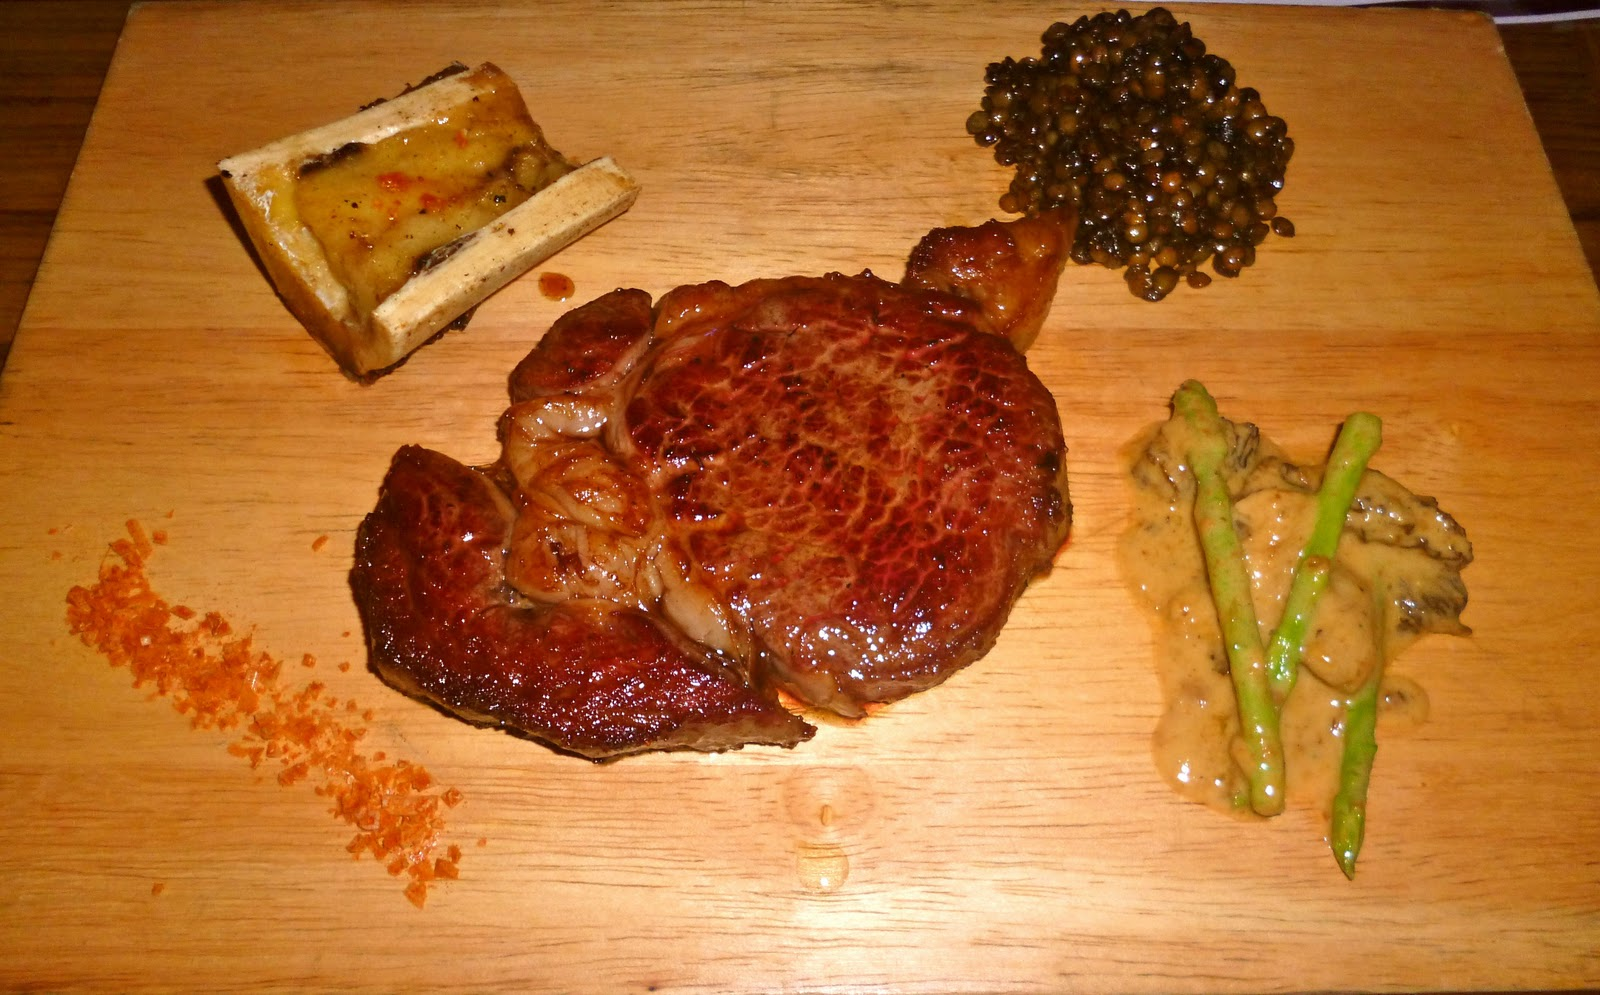 ... Dry-Aged Beef Steak, Asparagus-Morel Ragout, Bone Marrow, Stone Salt